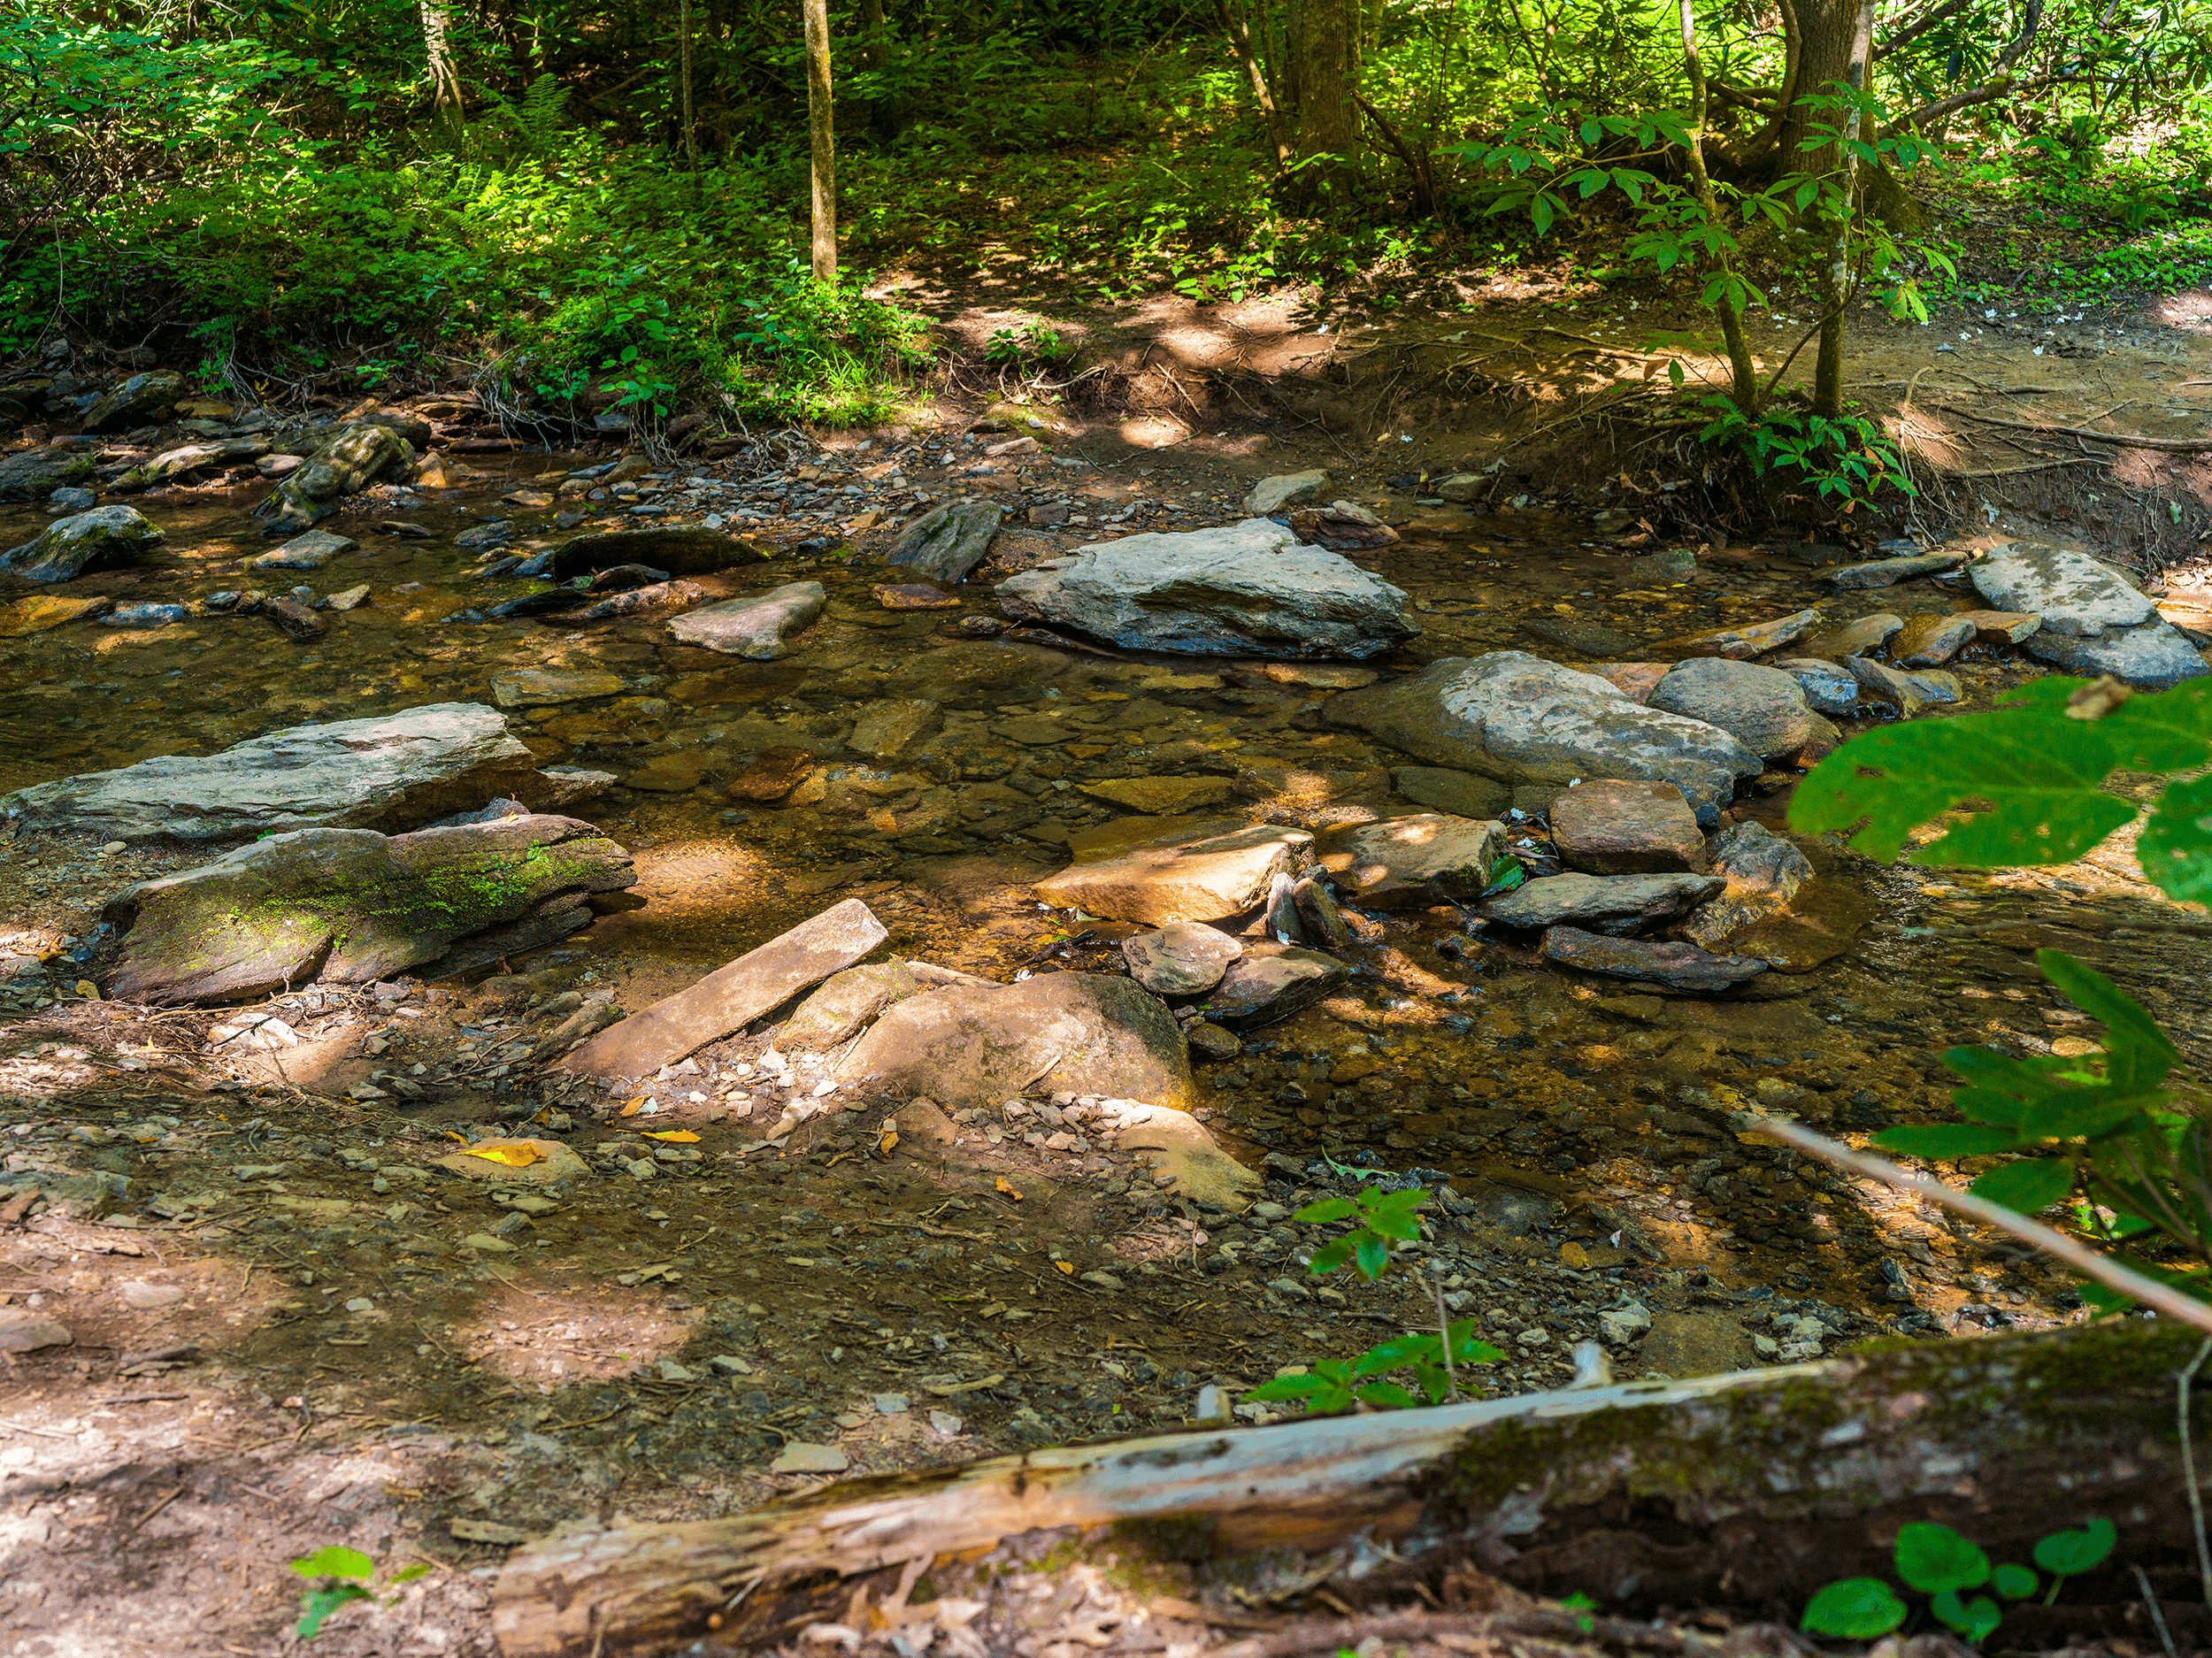 The  Exclamation Point Trail  connects to the  Skyline Trail  at Exclamation Point. The moderate-to-strenuous  Skyline Trail  meanders through the forest on its way to the  Upper Hickory Nut Falls . After 1 mile you reach  Falls Creek , which you need to cross to get to the viewing platform of  Upper Hickory Nut Falls .